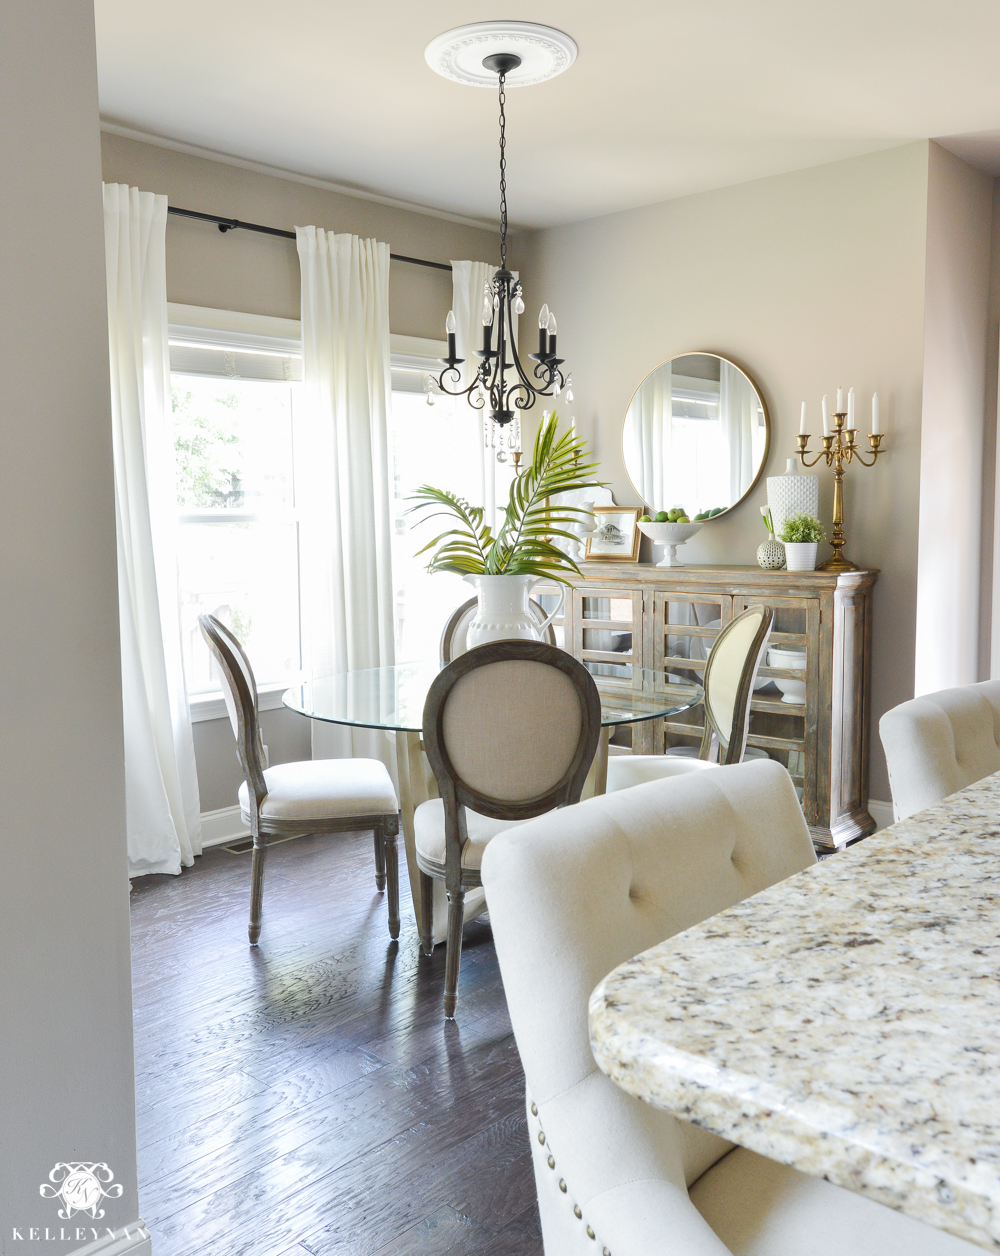 Shades of Summer Home Tour with Neutrals and Naturals- breakfast nook with white ikea ritva curtain panels and palm leaf arrangement